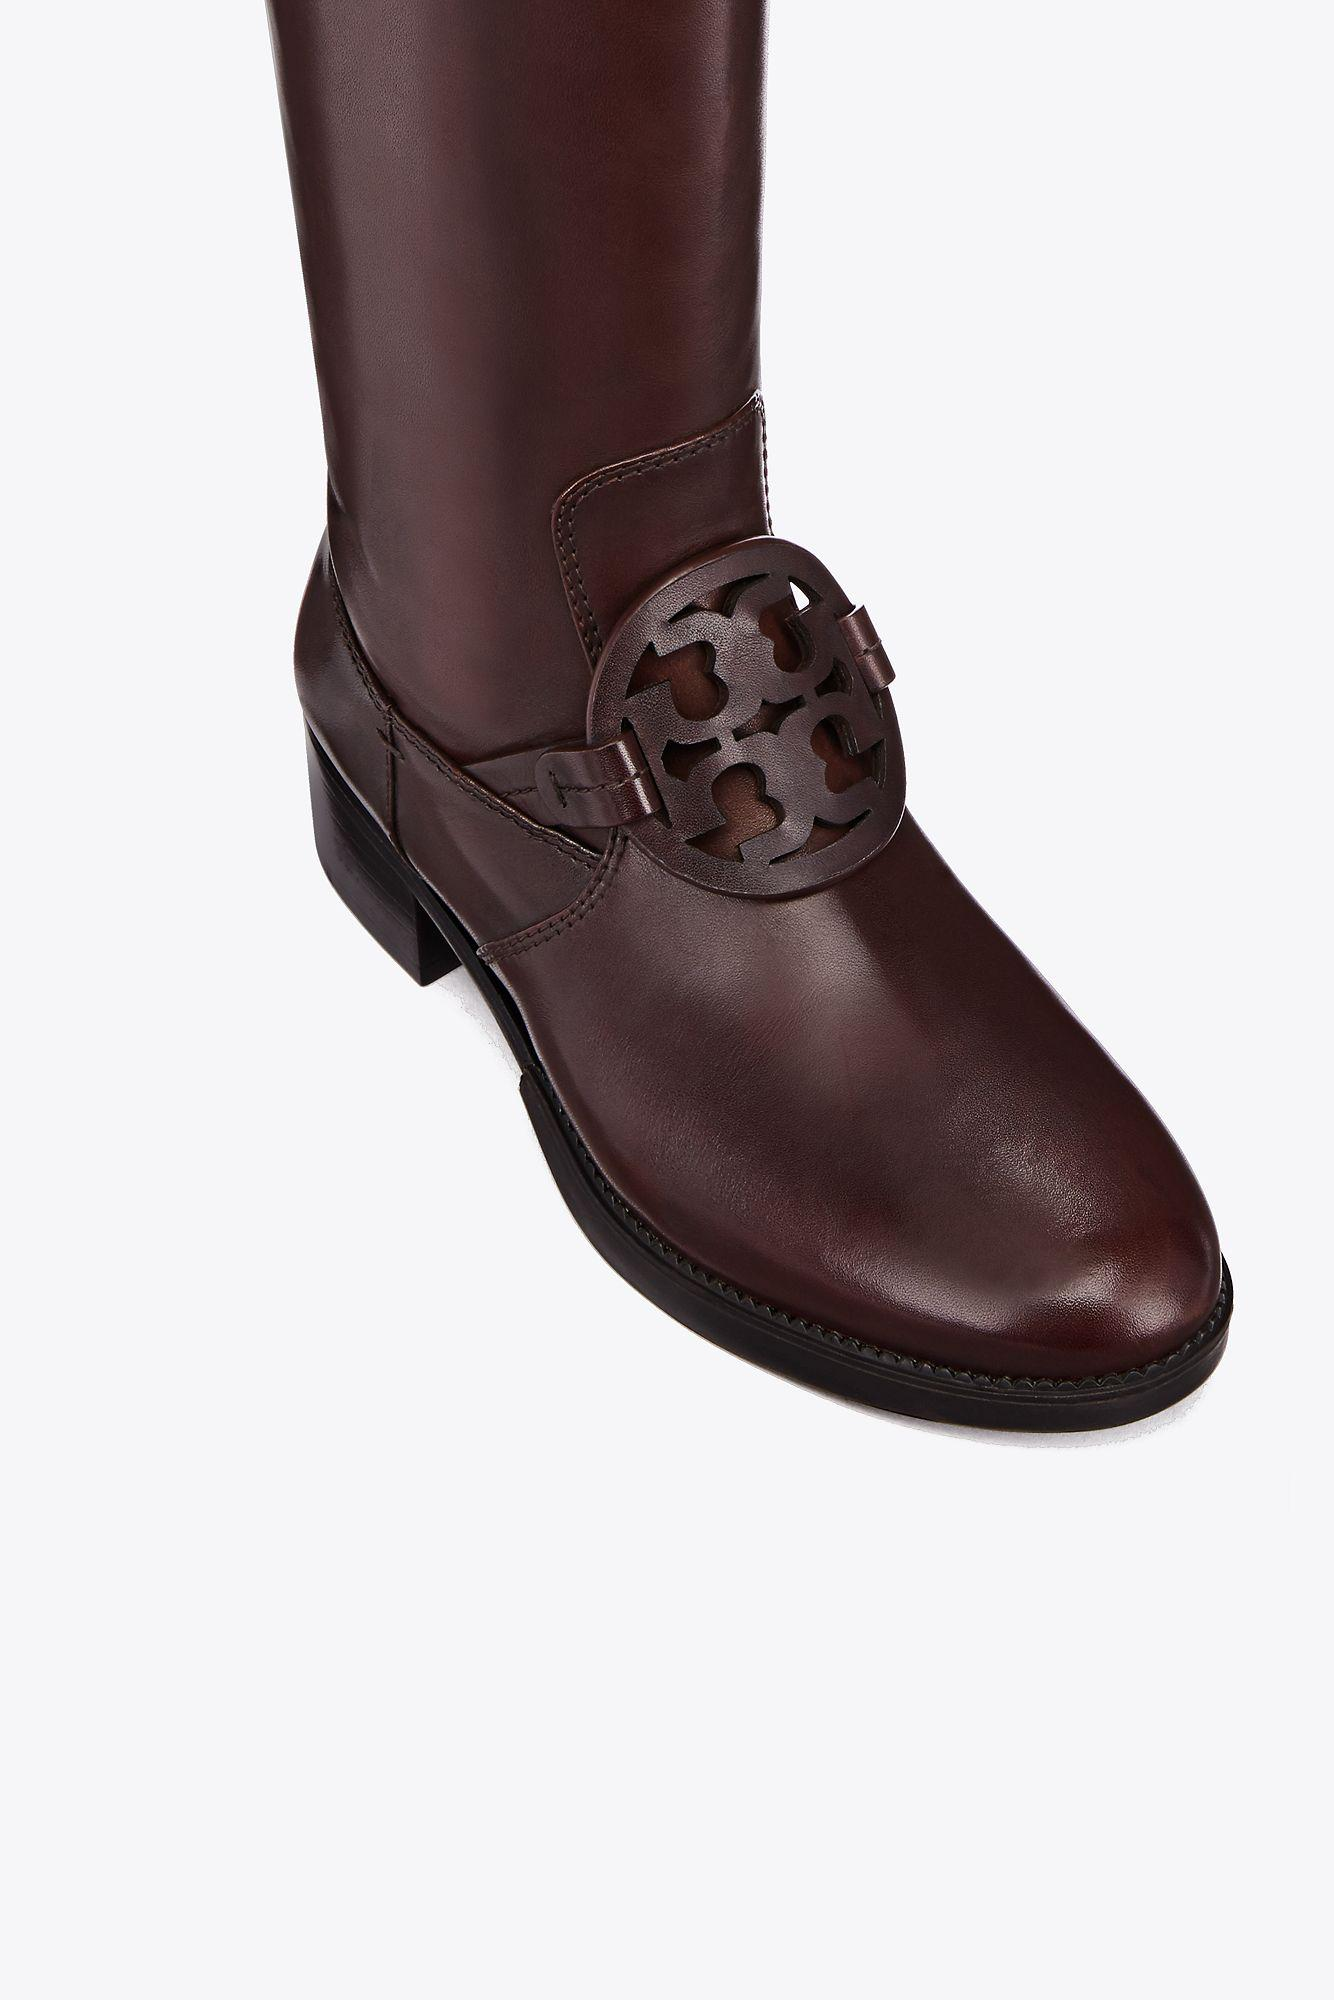 67dec9bc83d Tory Burch Miller Pull-on Boot in Brown - Lyst